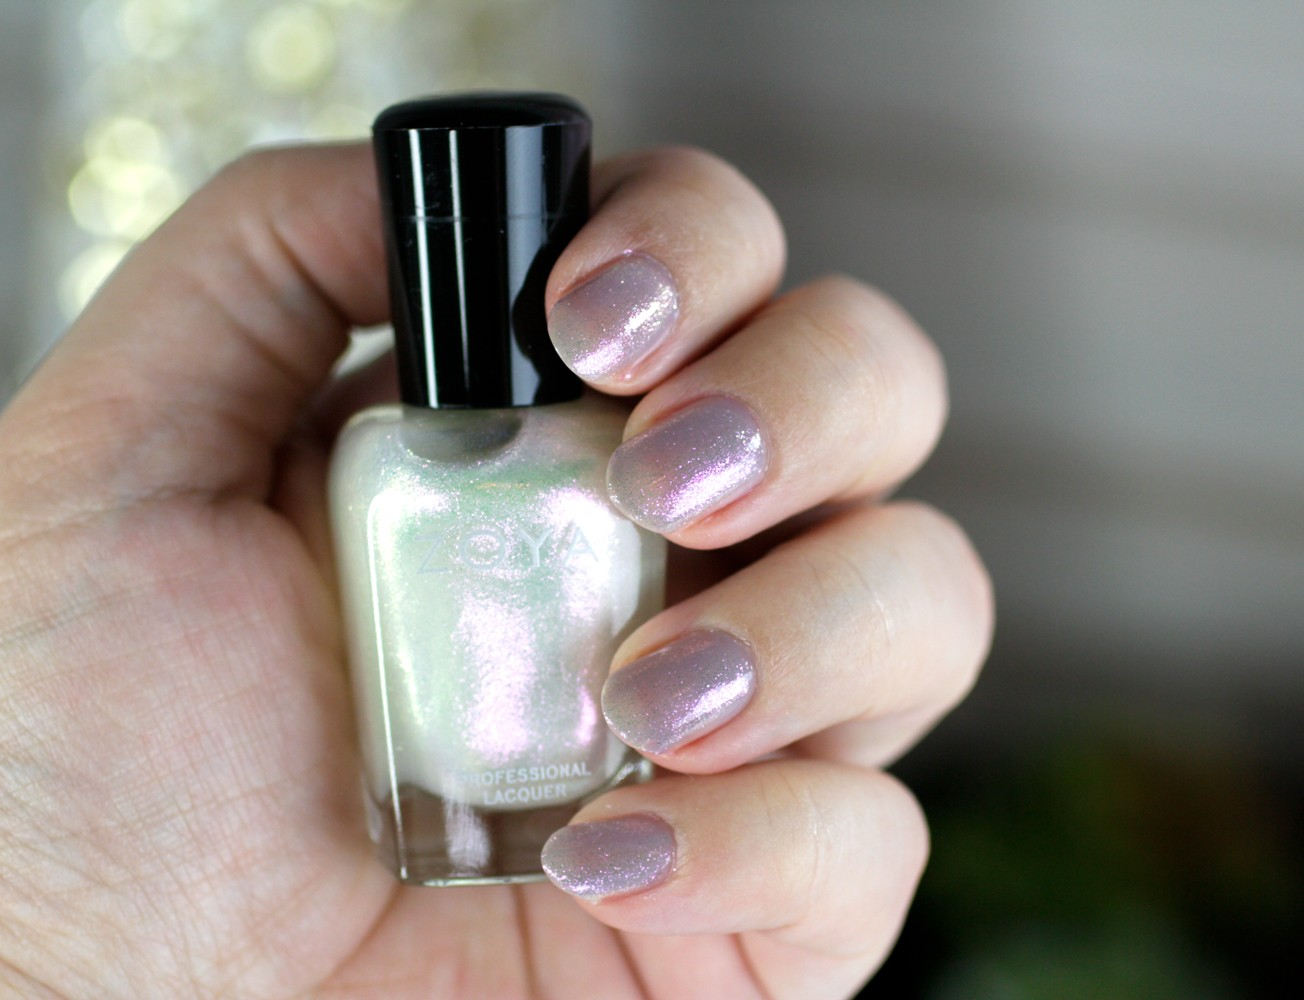 Zoya Pastel Gray Jelly Polish - Vickie Topped with Leia - Zoya Nail Polish Review: Kisses Pastel Jellies Collection by LA cruelty free beauty blogger My Beauty Bunny